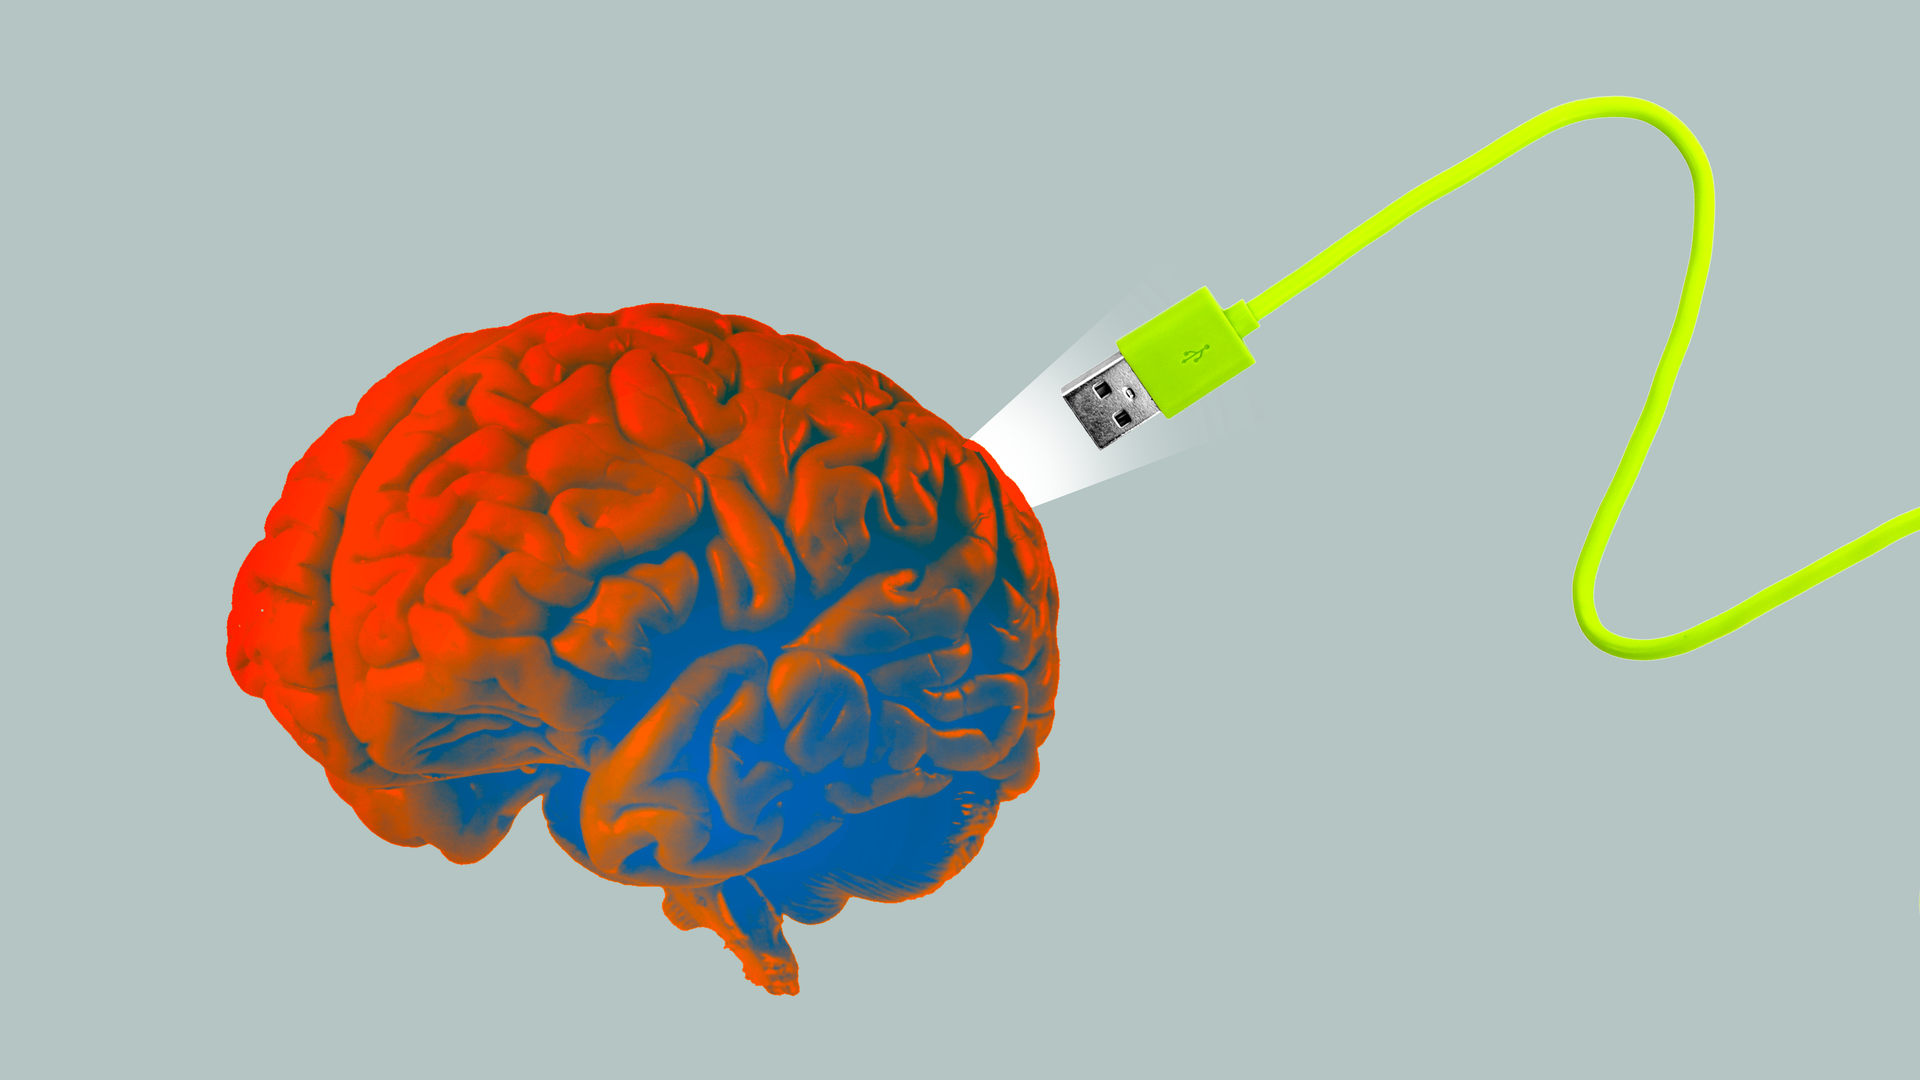 Illustration of a USB cord plugging into a brain